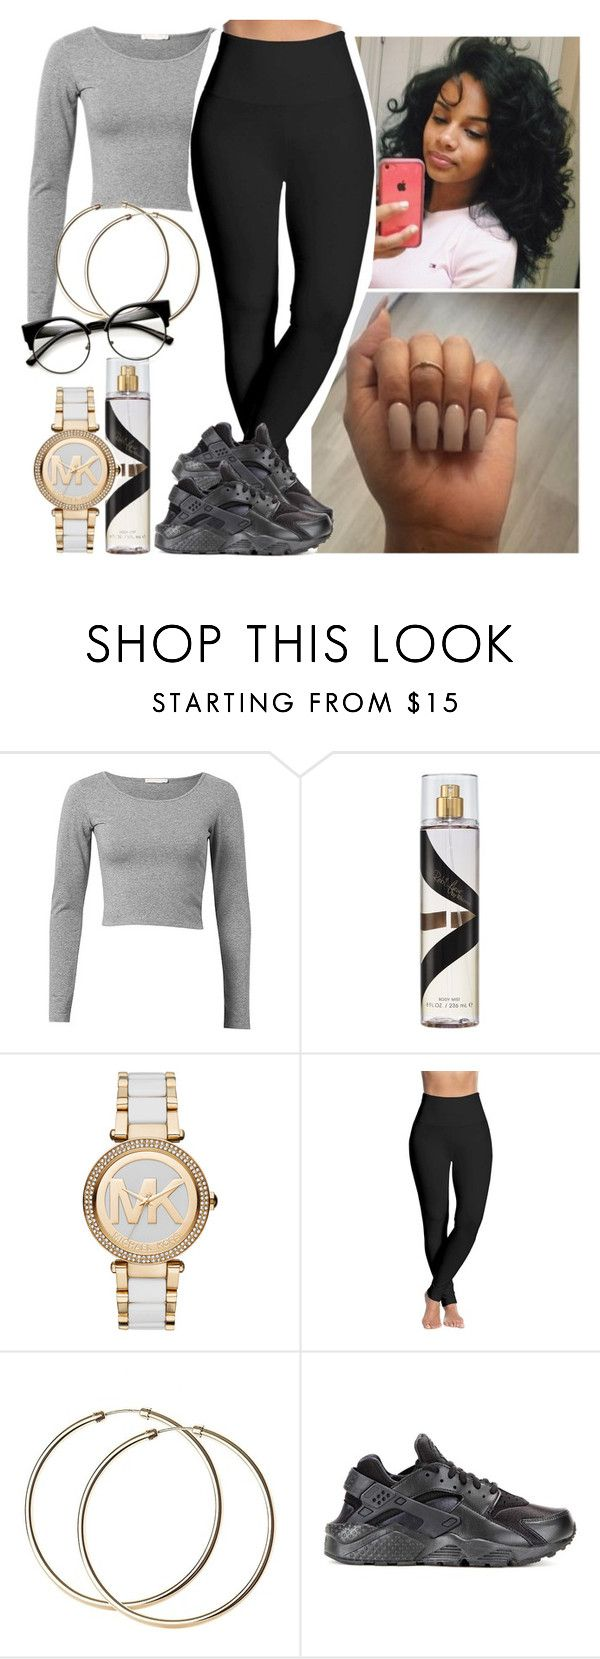 """""""School-Wednesday , forgot to post 😩"""" by saucinonyou999 ❤ liked on Polyvore featuring OPTIONS, MICHAEL Michael Kors, Lyssé Leggings and NIKE"""